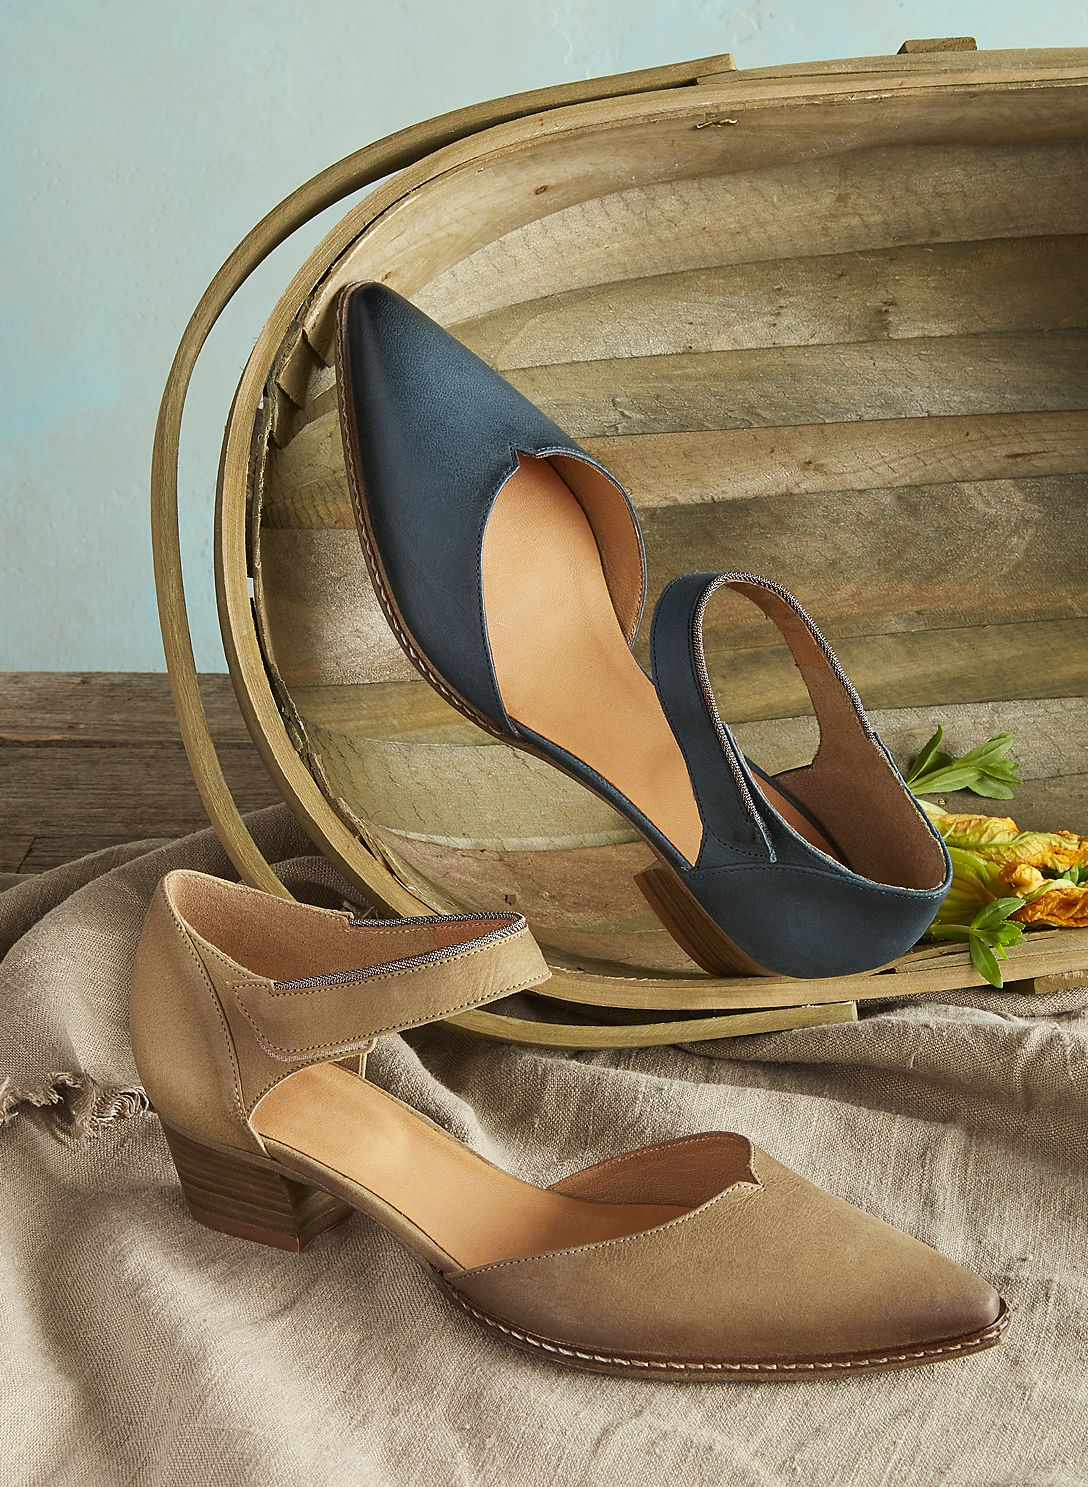 Coralise Shoes - sleek Mary Janes shoes that are entirely handmade, from  heel to toe